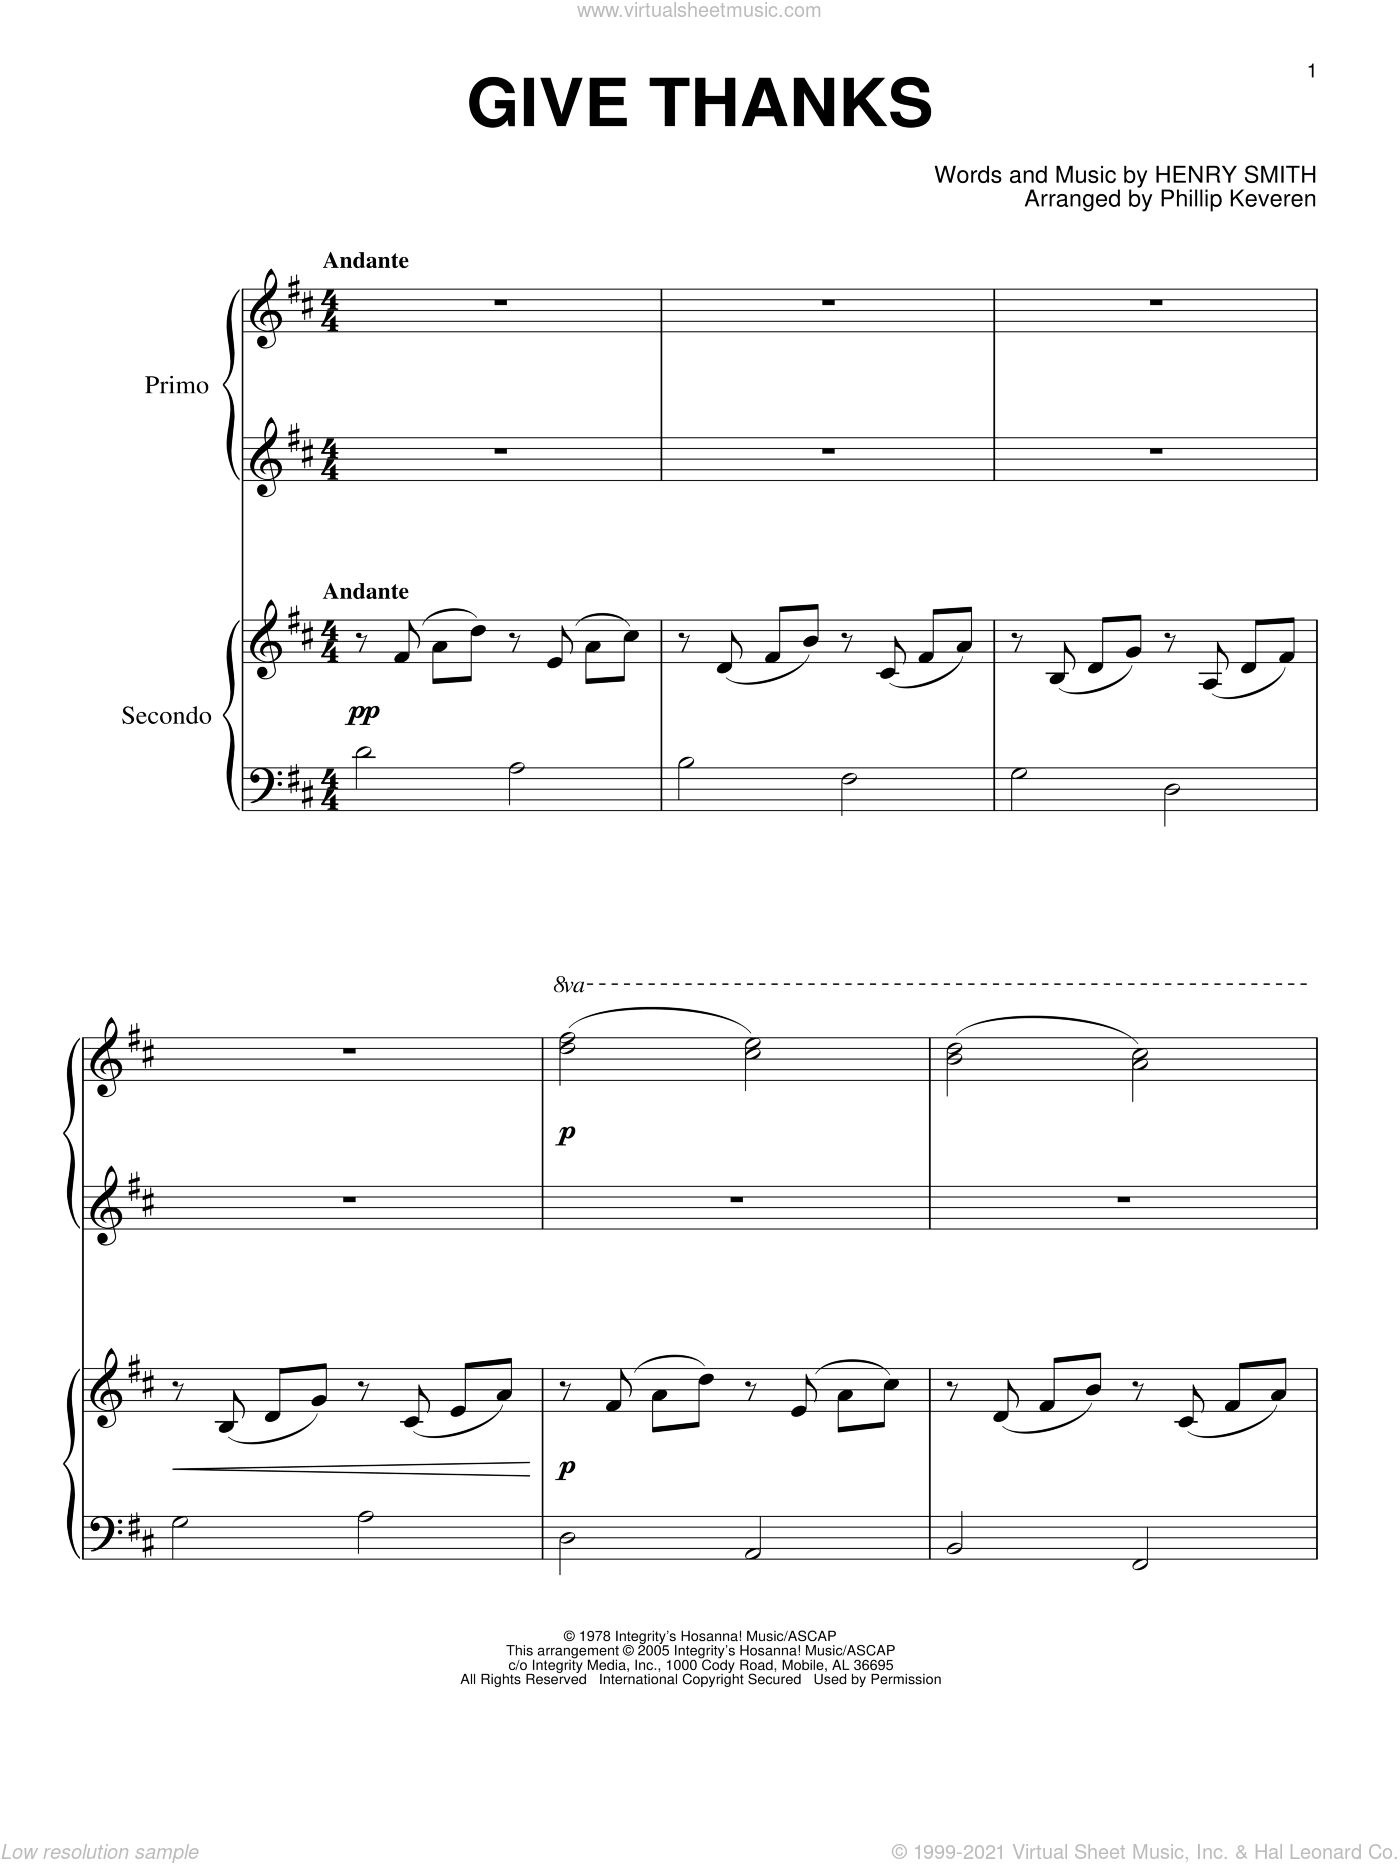 Give Thanks sheet music for piano four hands by Henry Smith and Phillip Keveren, intermediate skill level